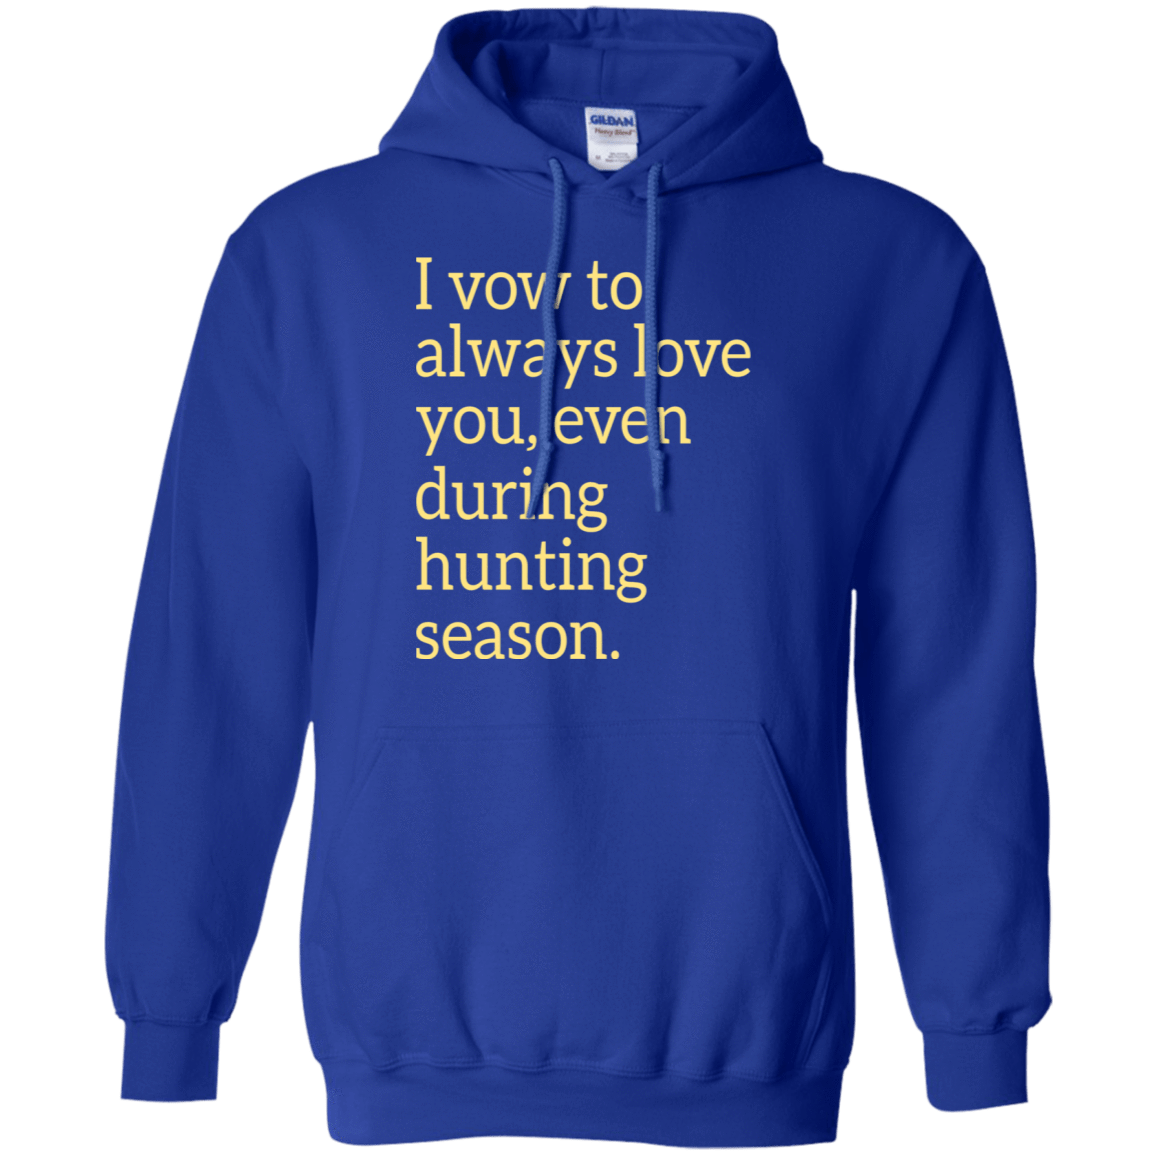 I Vow To Always Love You Even During Hunting Season 541-4765-73426321-23175 - Tee Ript